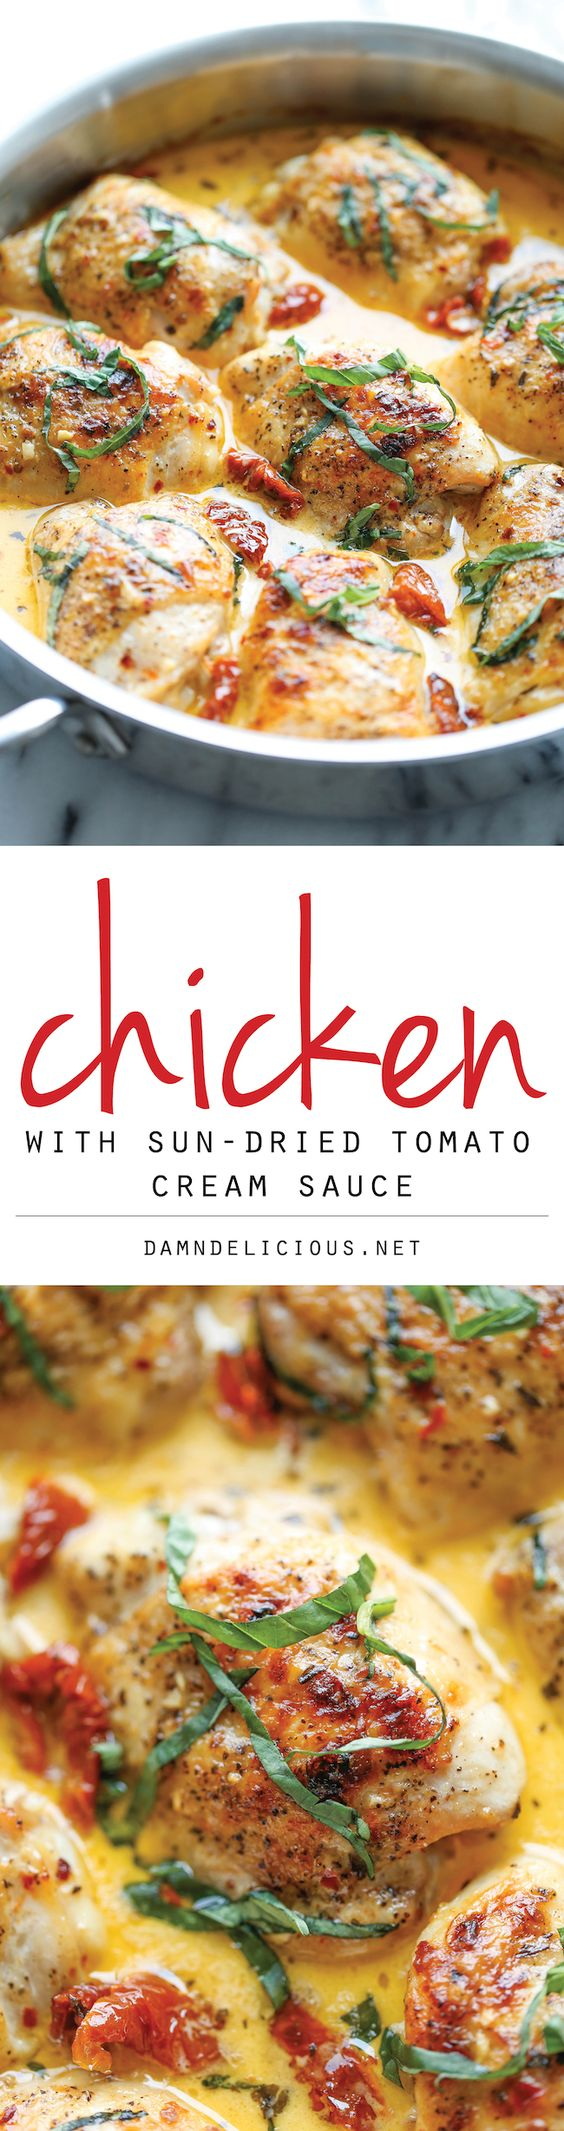 Chicken with Sun-Dried Tomato Cream Sauce - Crisp-tender chicken in the most amazing cream sauce ever. It's so good, you'll want to guzzle down the sauce!: